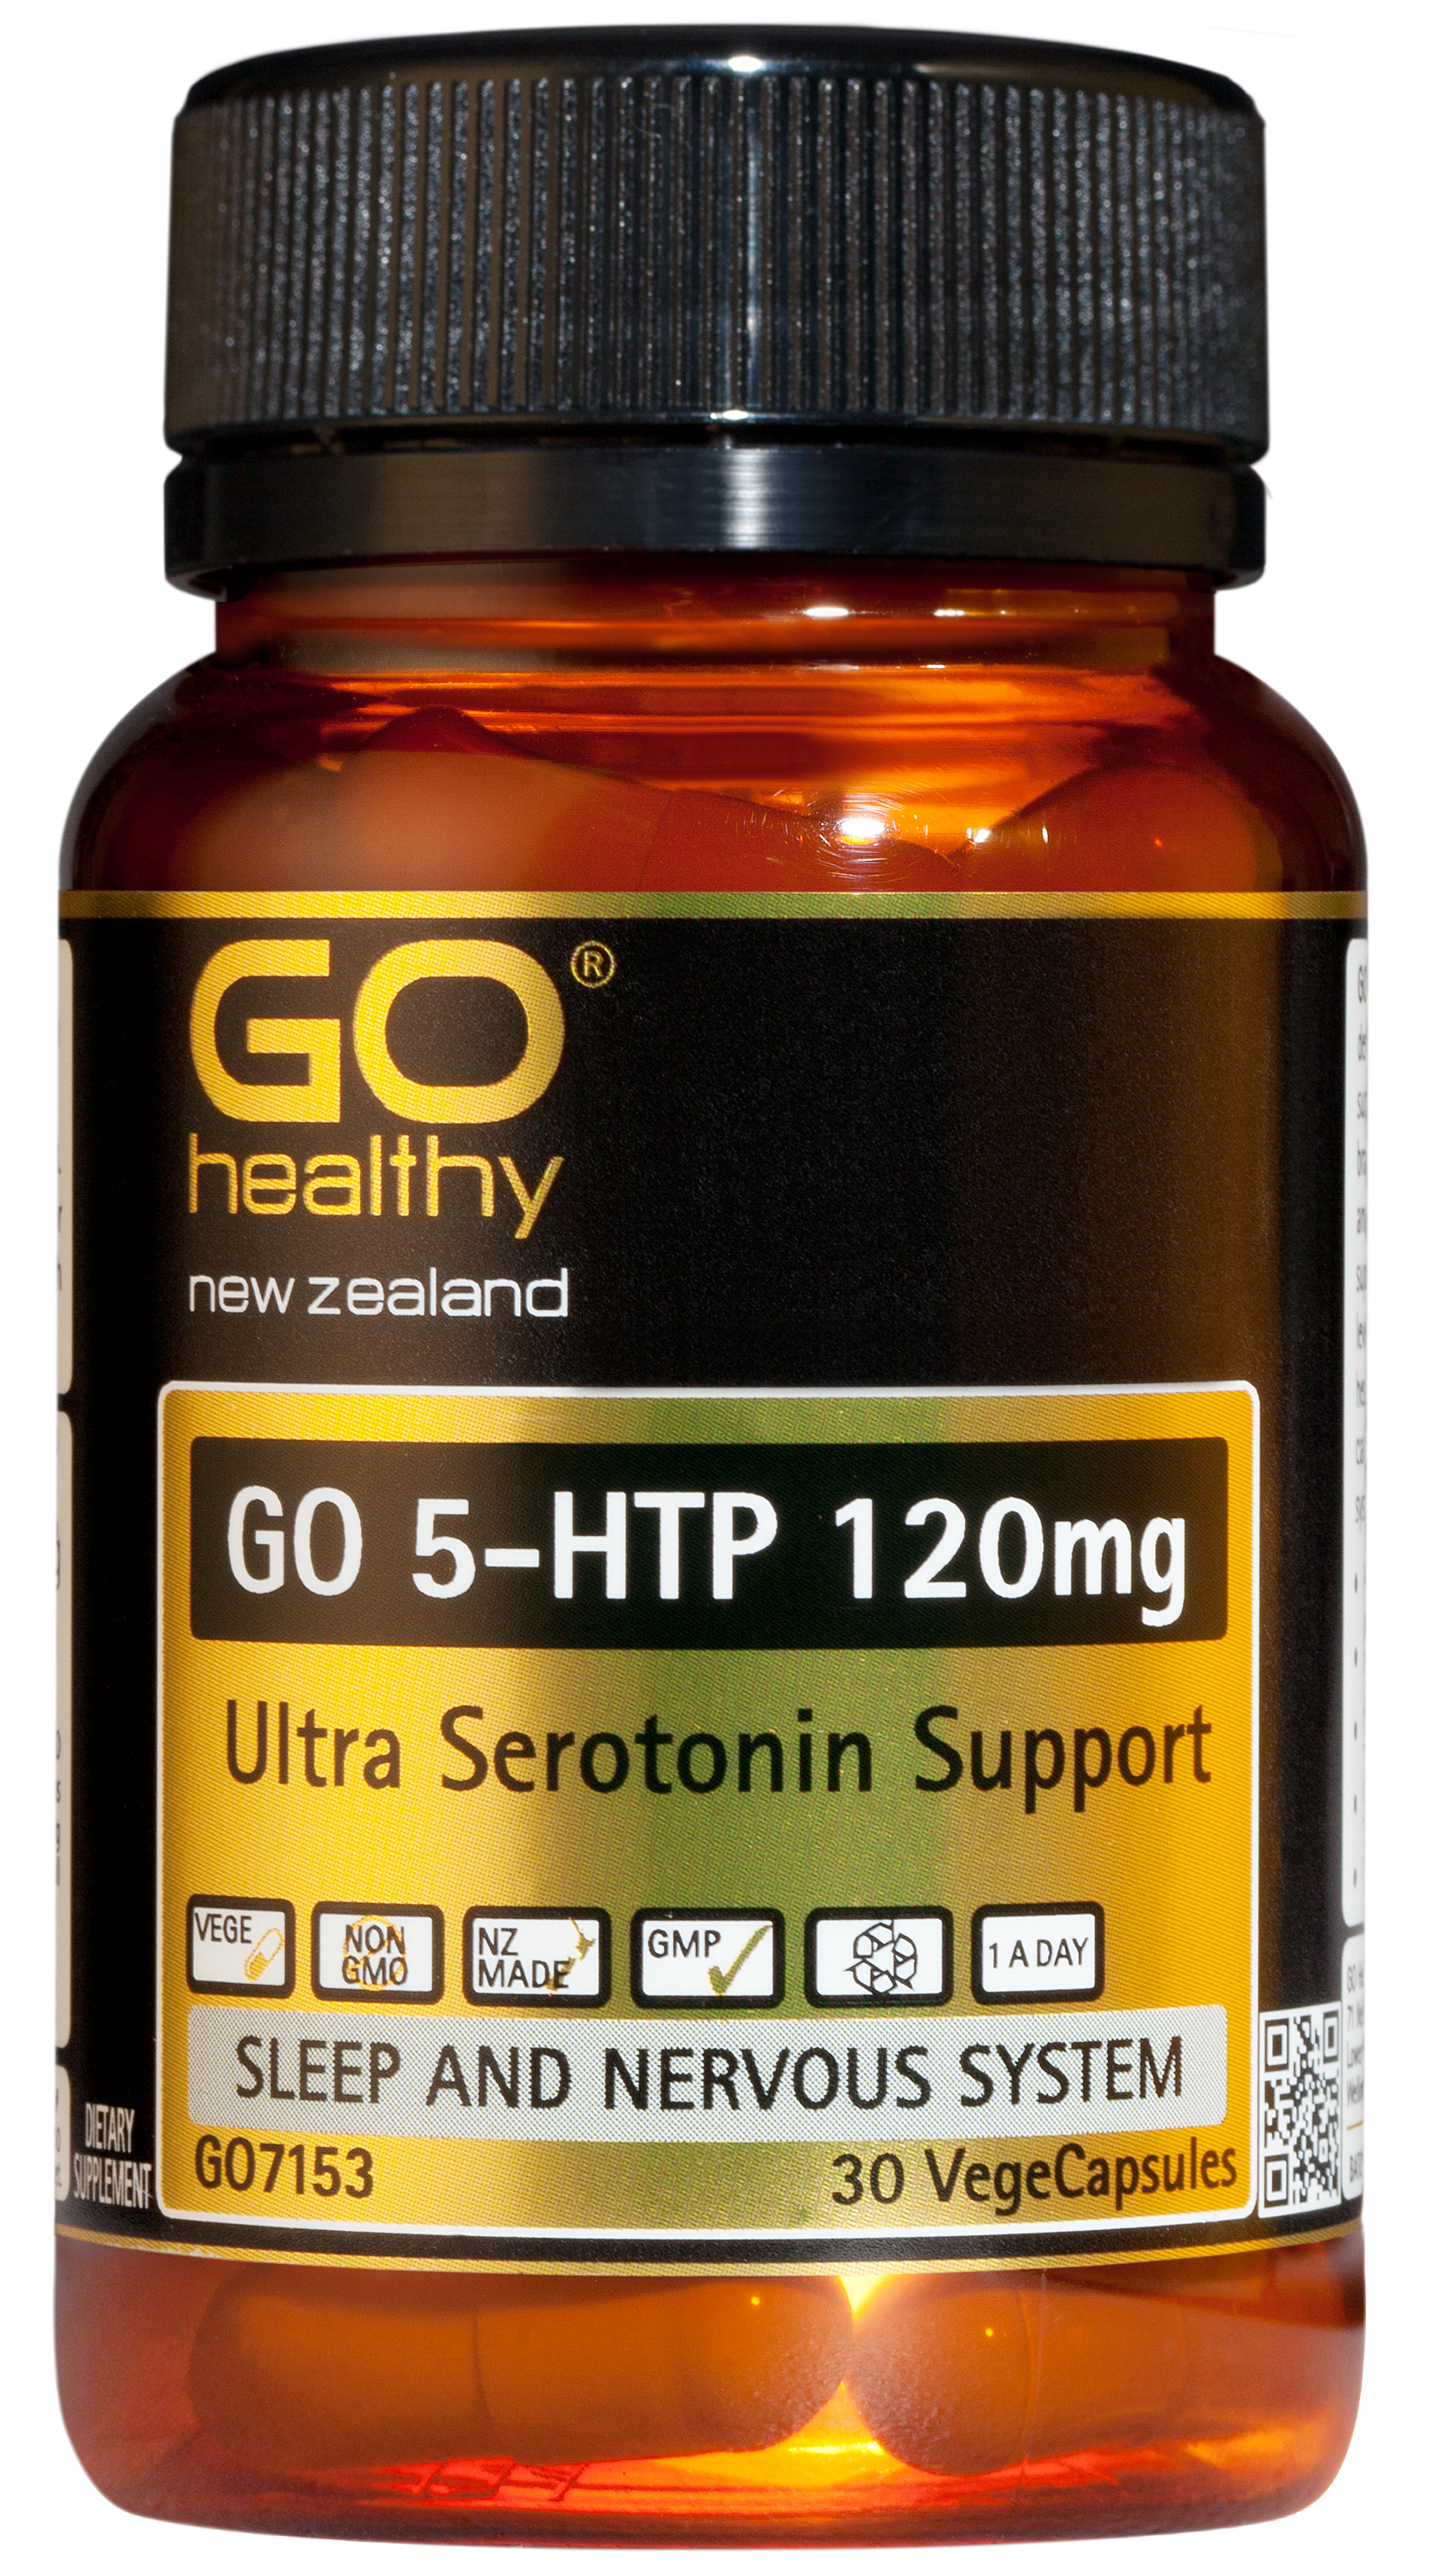 Go Healthy 5-HTP 120mg 30 VegeCaps